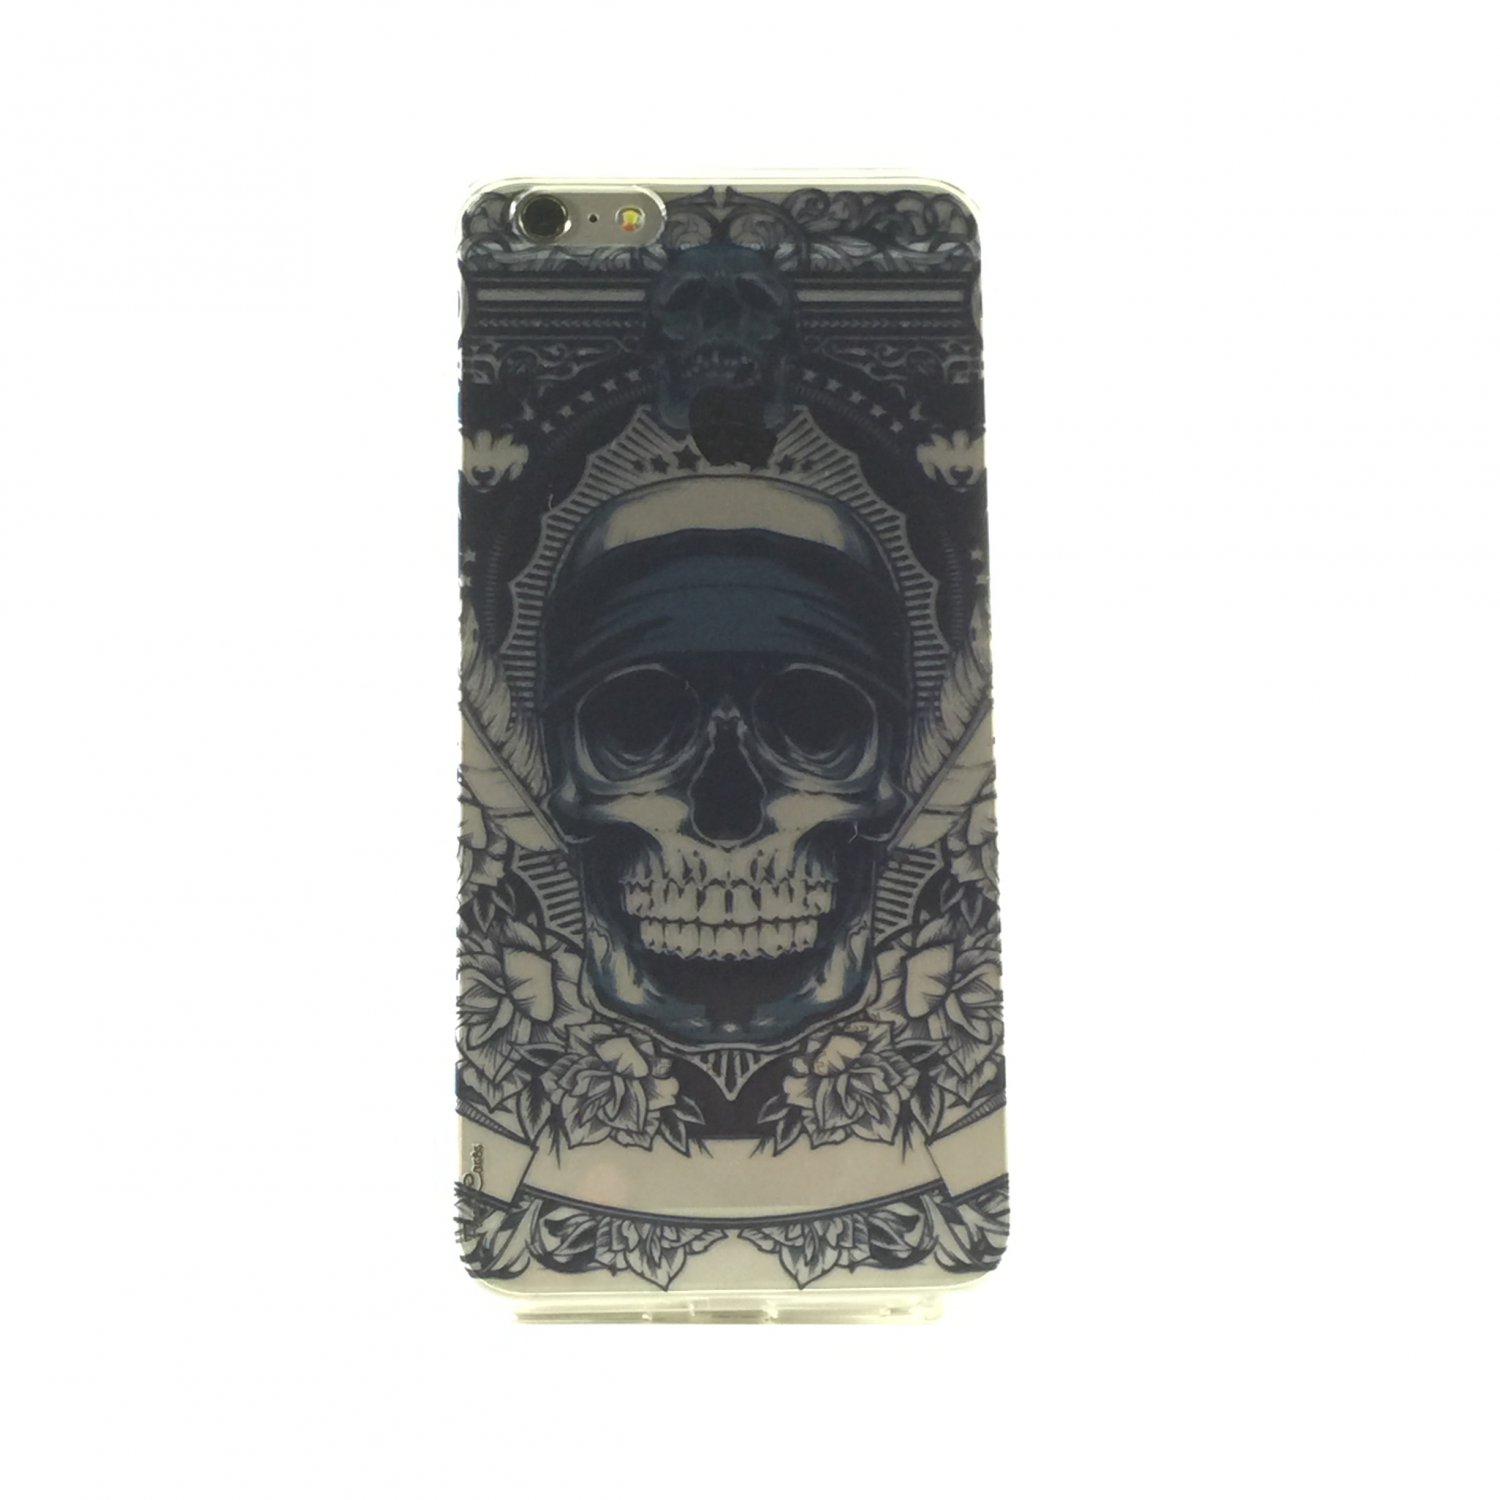 Skull of Anarchy - New Sugar Skull Skull Cell Phone Case iPhone 6 plus ip6 plus